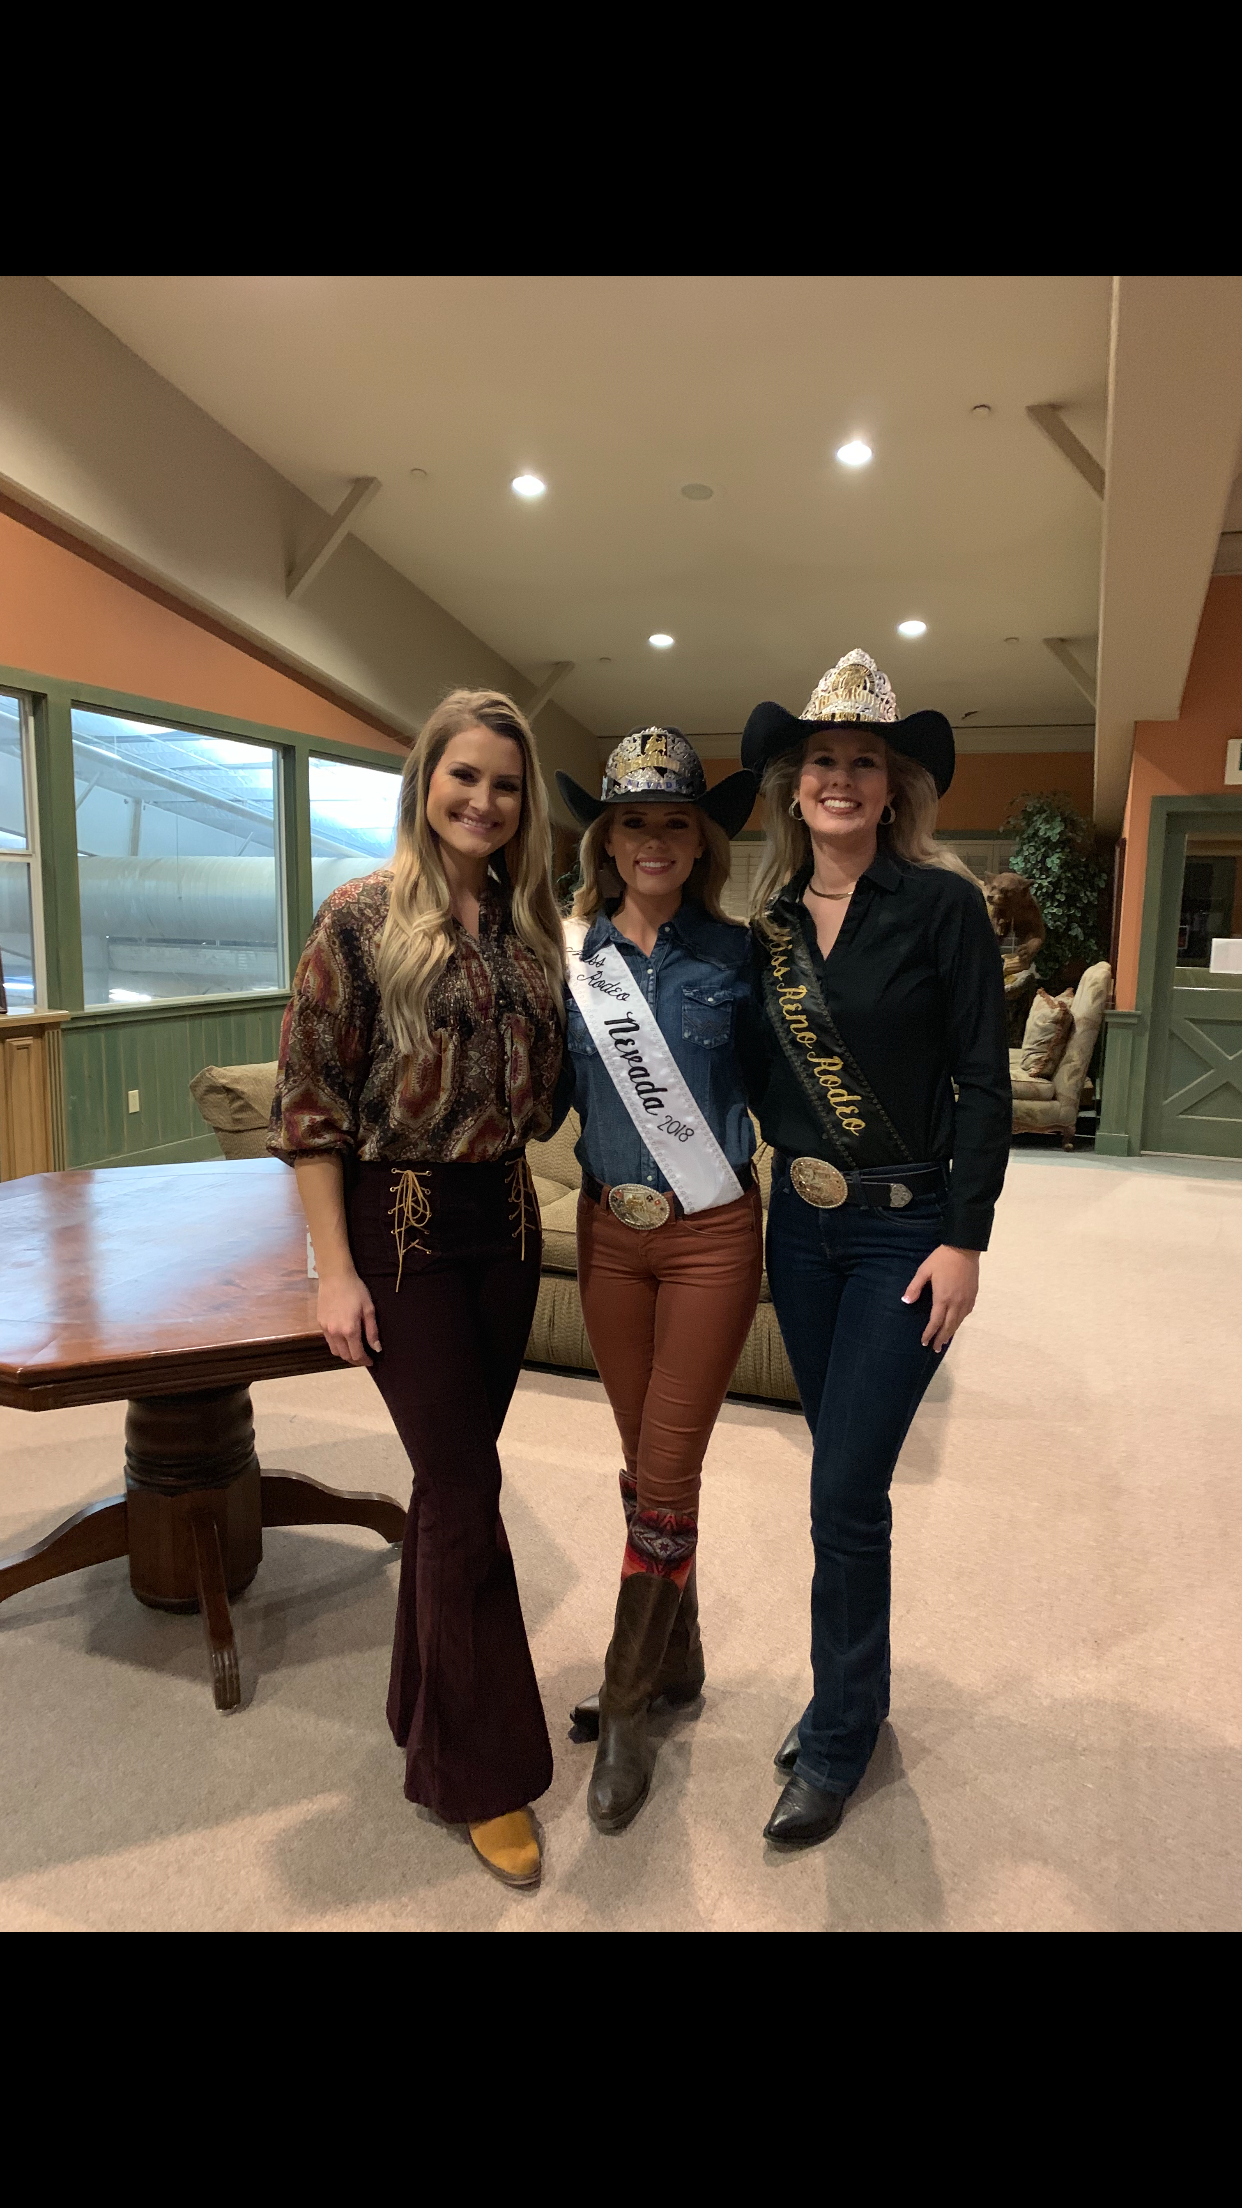 Miss Rodeo America 2017 Miss Rodeo Nevada 2018 Miss Reno